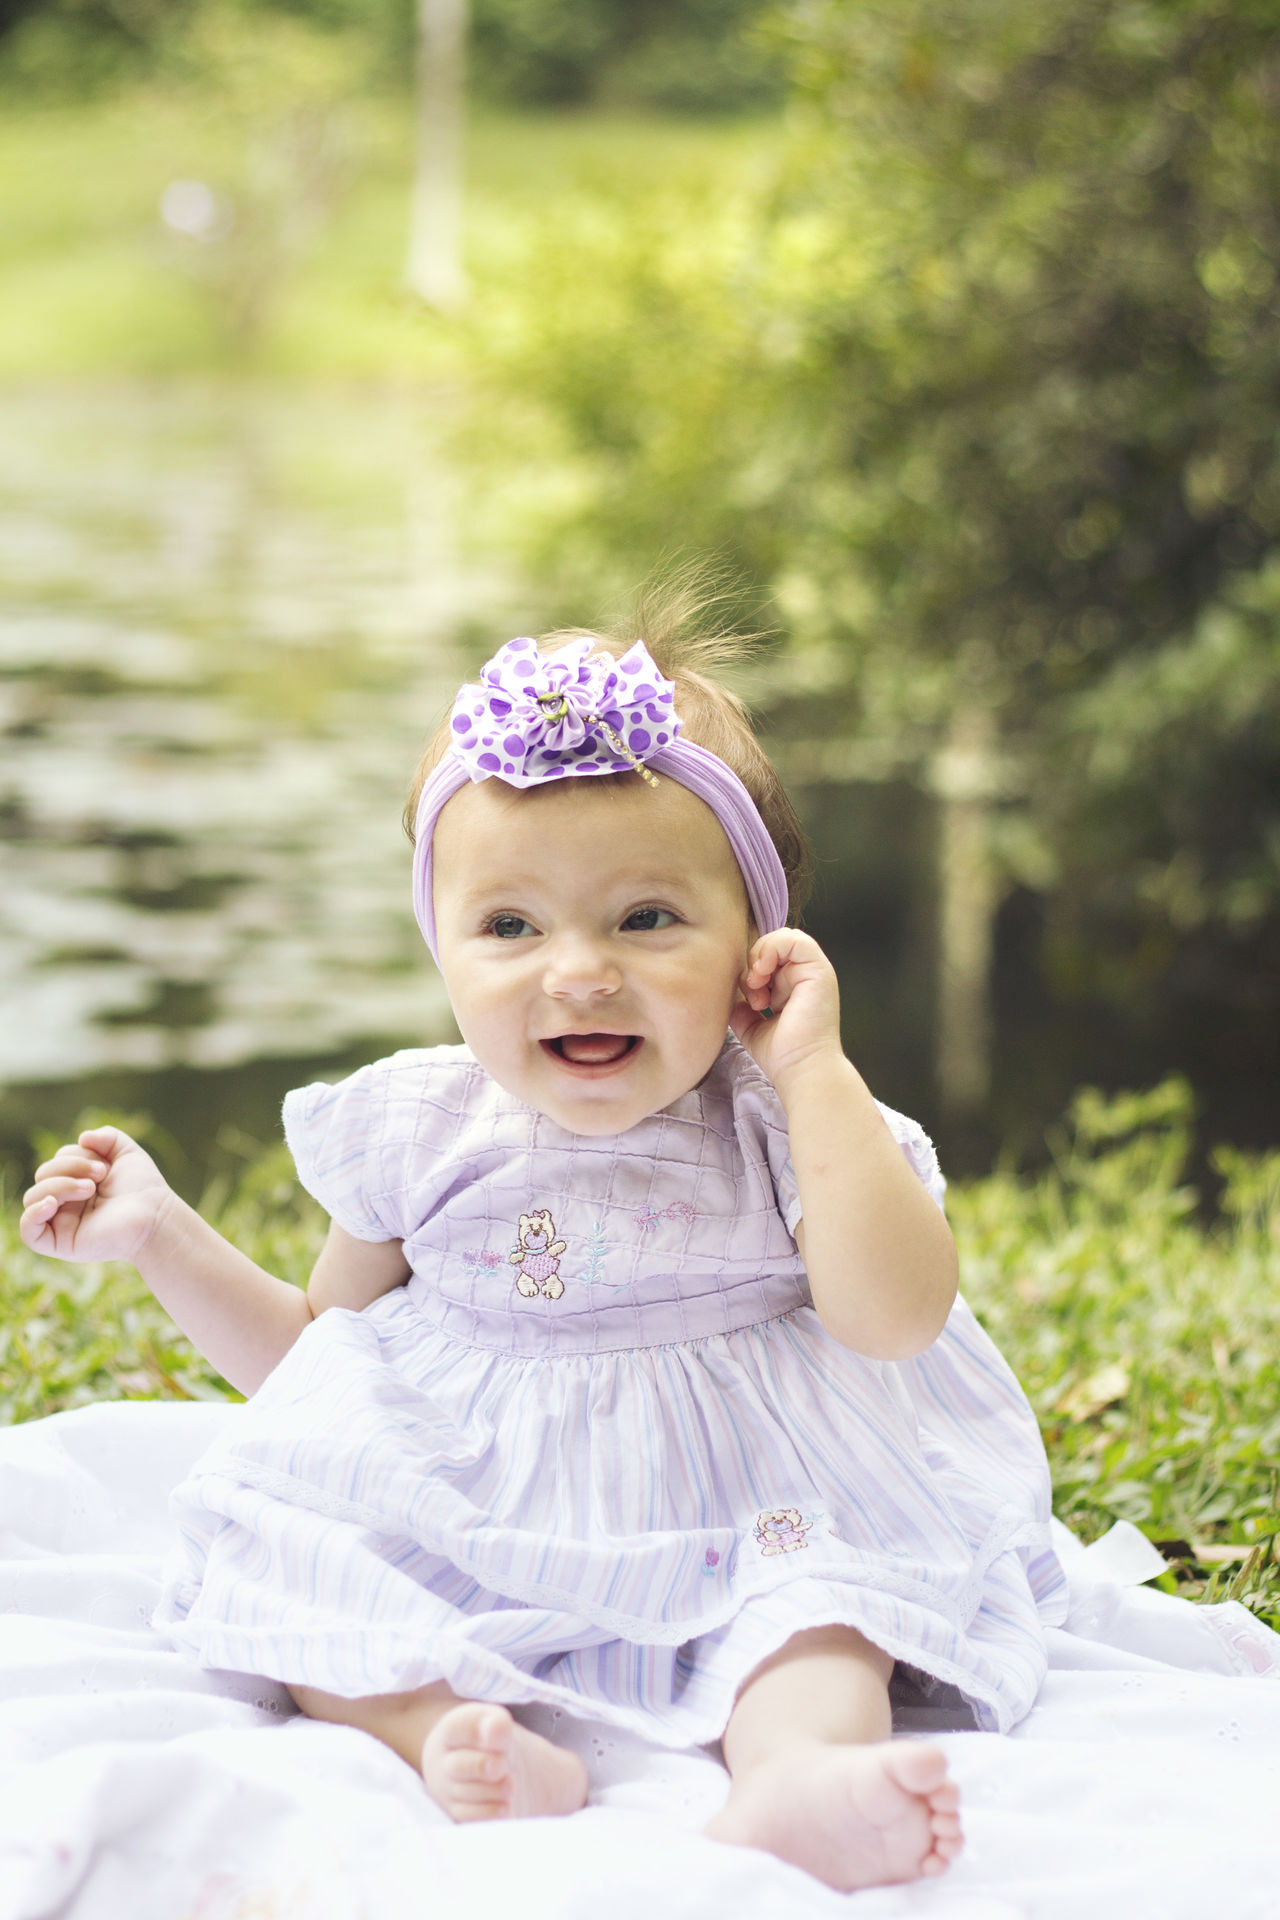 Children Photography Sweet Child Conected With Nature Getting Inspired